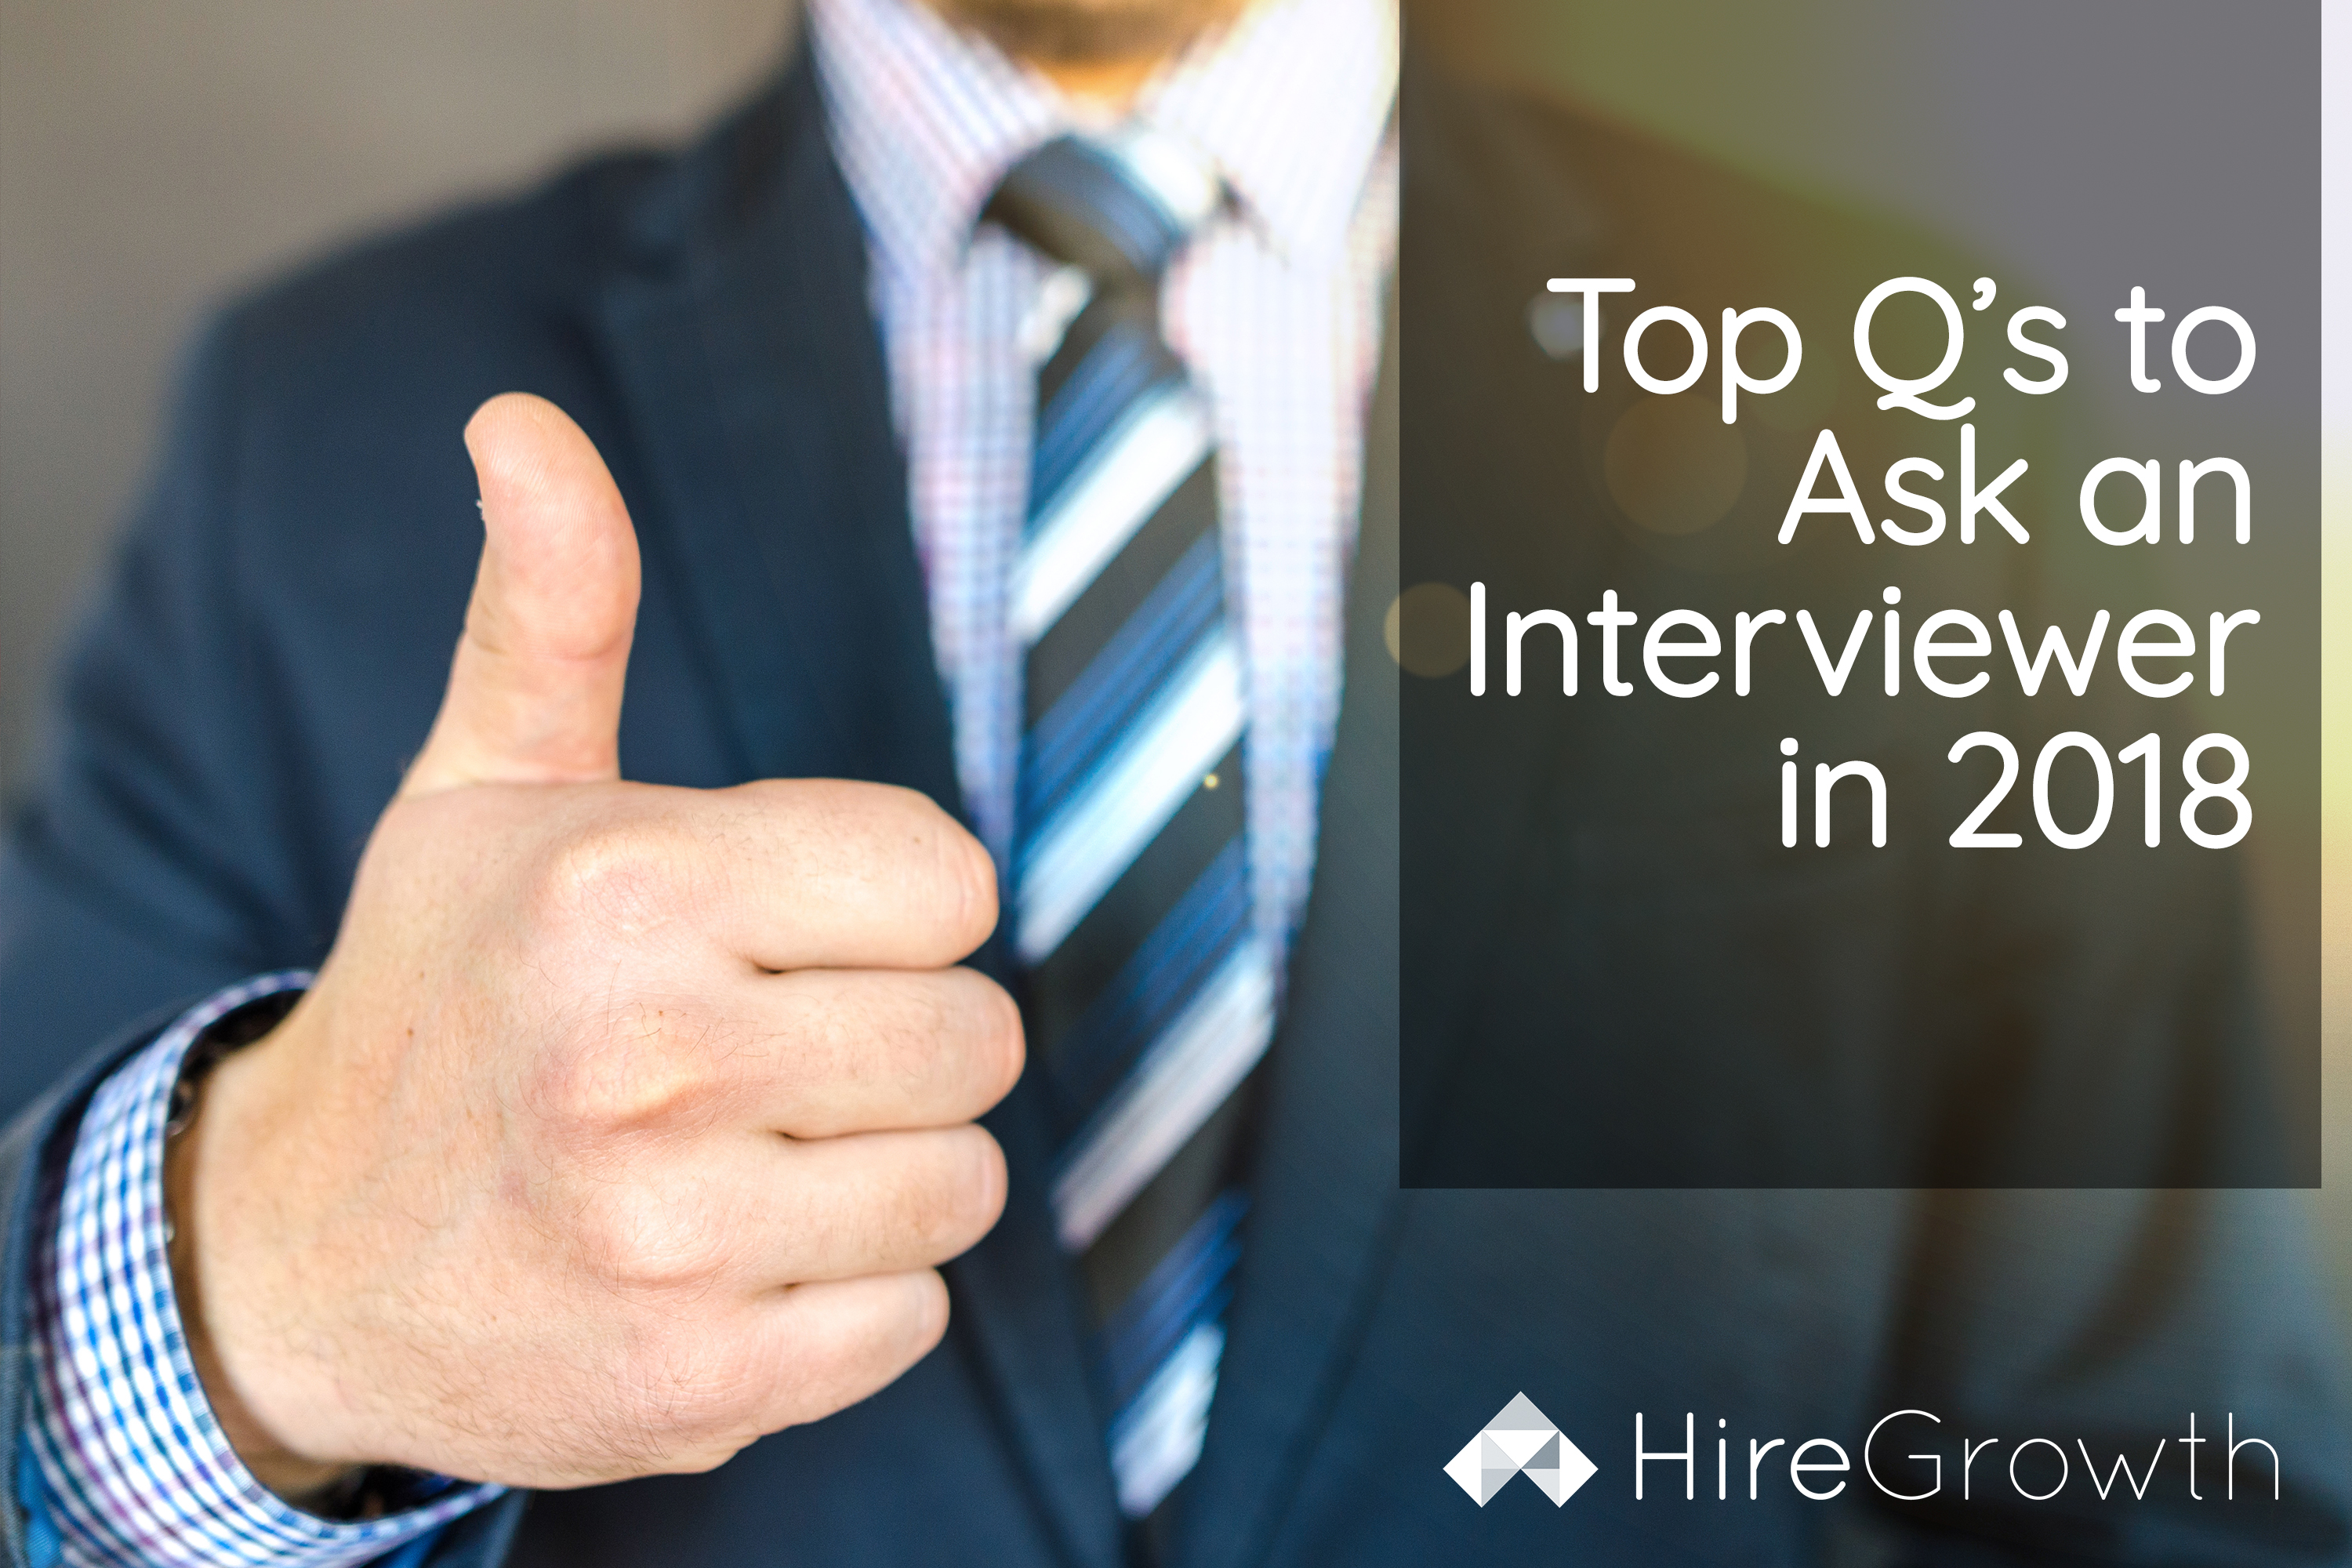 Top Q's to Ask an Interviewer in 2018